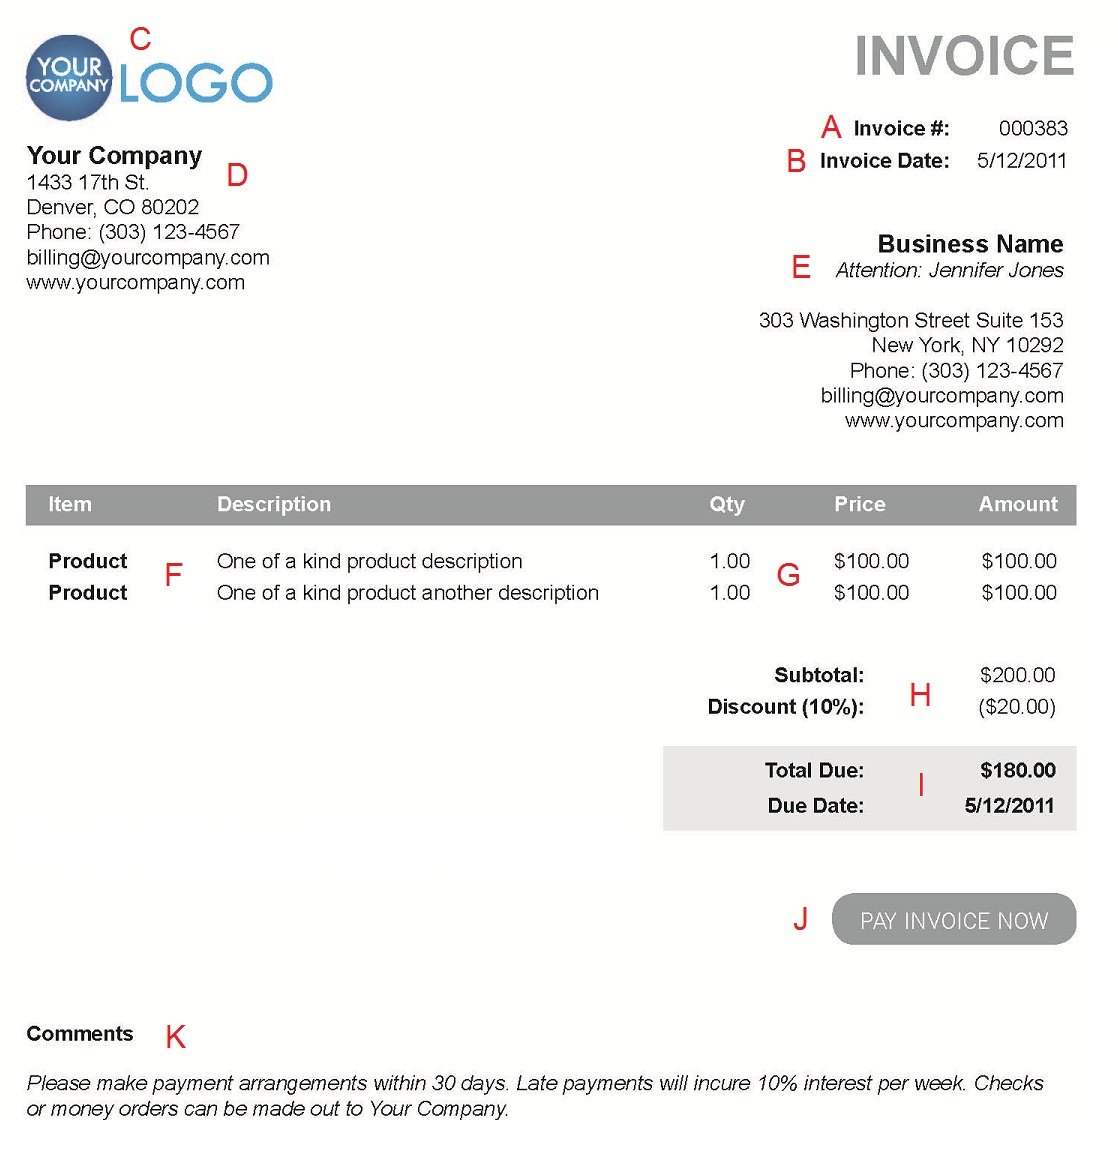 Hucareus  Pretty The  Different Sections Of An Electronic Payment Invoice With Handsome A  With Easy On The Eye Consumer Reports Invoice Price Also Free Invoice Template Doc In Addition Car Invoice Cost And How To Write Invoices As Well As Invoices Template Free Additionally Training Invoice Template From Paysimplecom With Hucareus  Handsome The  Different Sections Of An Electronic Payment Invoice With Easy On The Eye A  And Pretty Consumer Reports Invoice Price Also Free Invoice Template Doc In Addition Car Invoice Cost From Paysimplecom